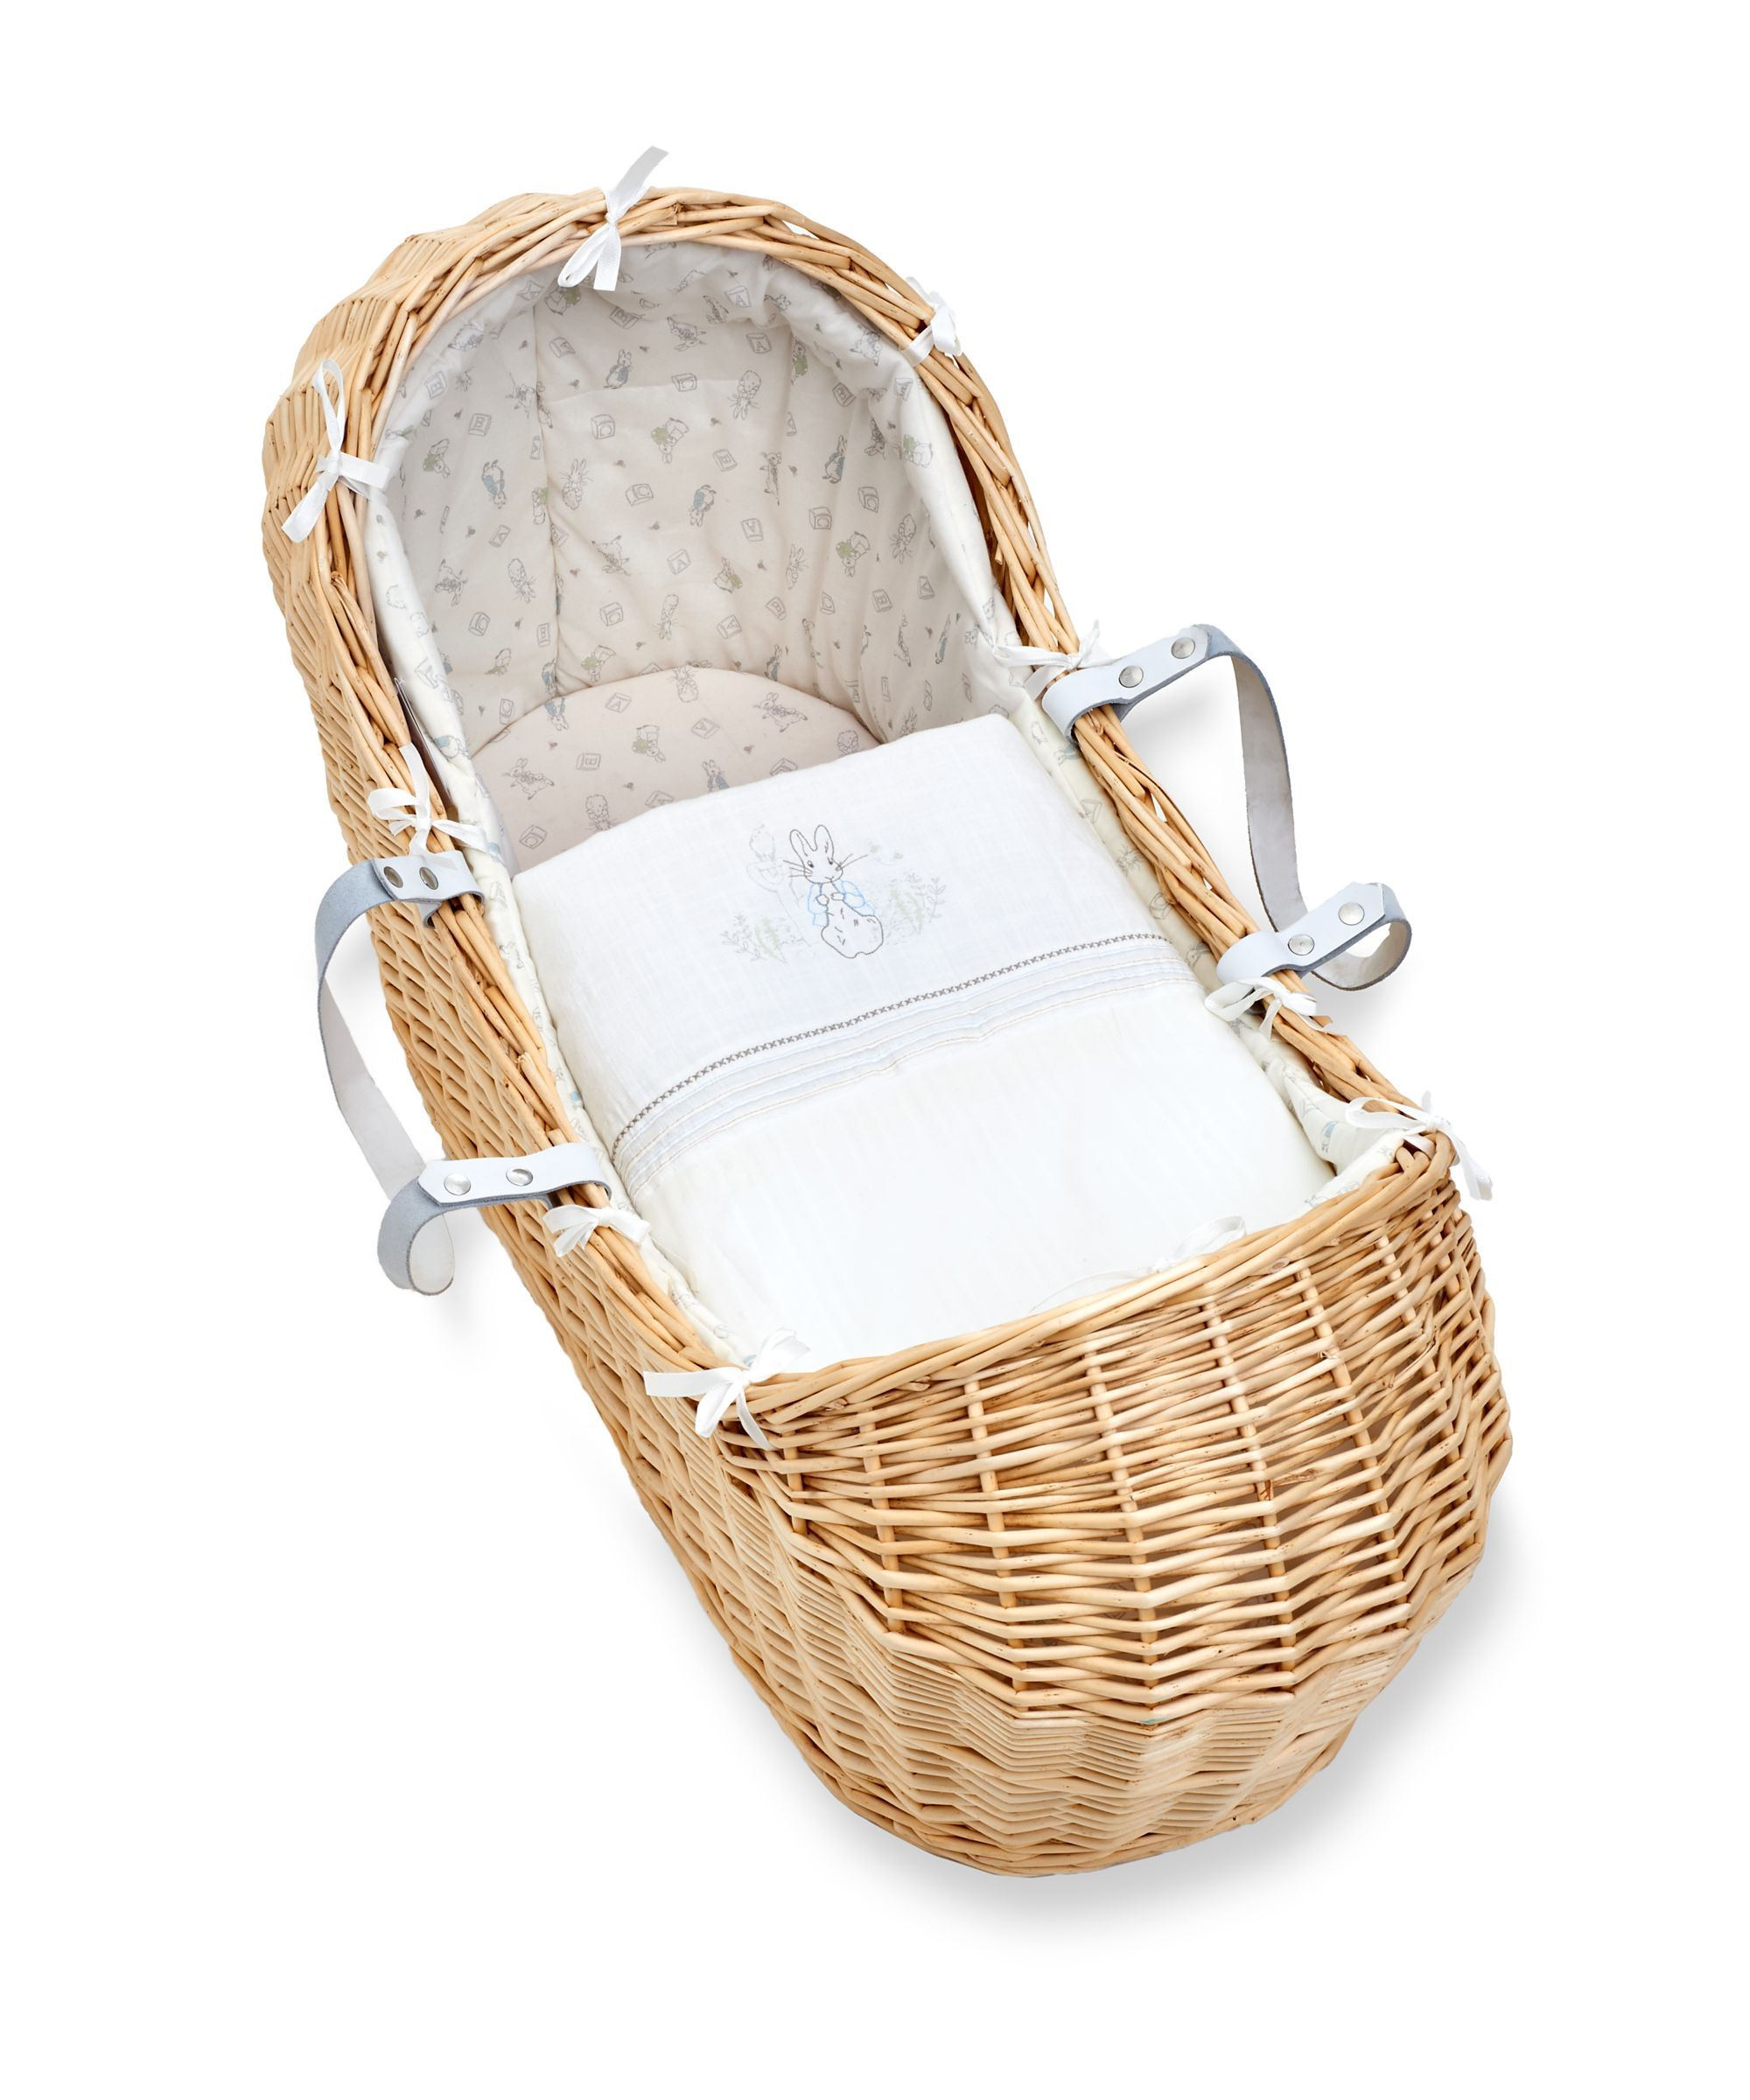 Baby cribs moses baskets - Buy Cribs And Moses Baskets From Mothercare Our Collection Includes Swinging Cribs Rocking Stands Twin Moses Baskets Stands From Chicco Baby K More